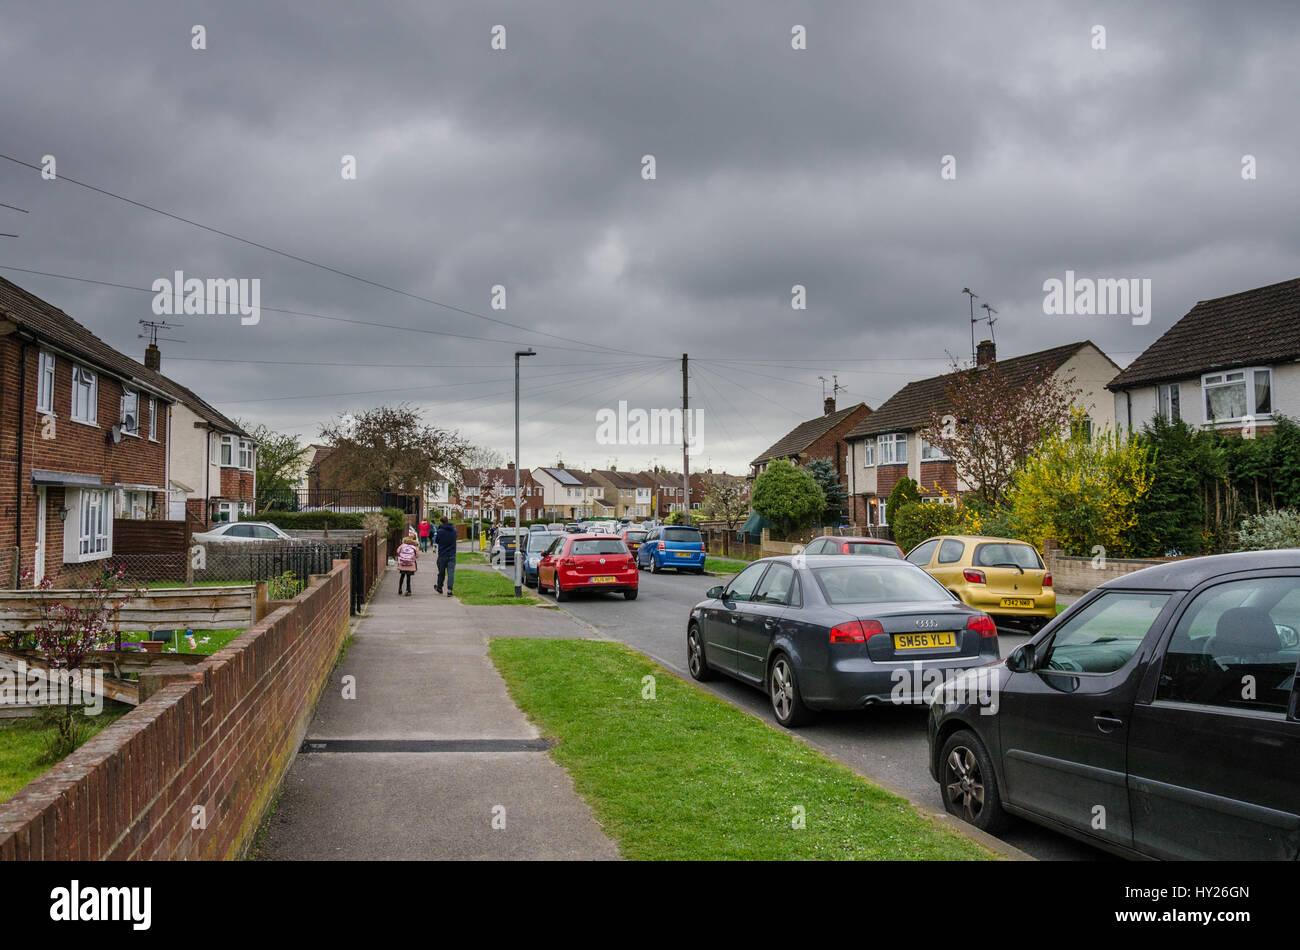 reading-uk-31st-march-2017-uk-weather-dark-heavy-looking-skies-over-HY26GN.jpg